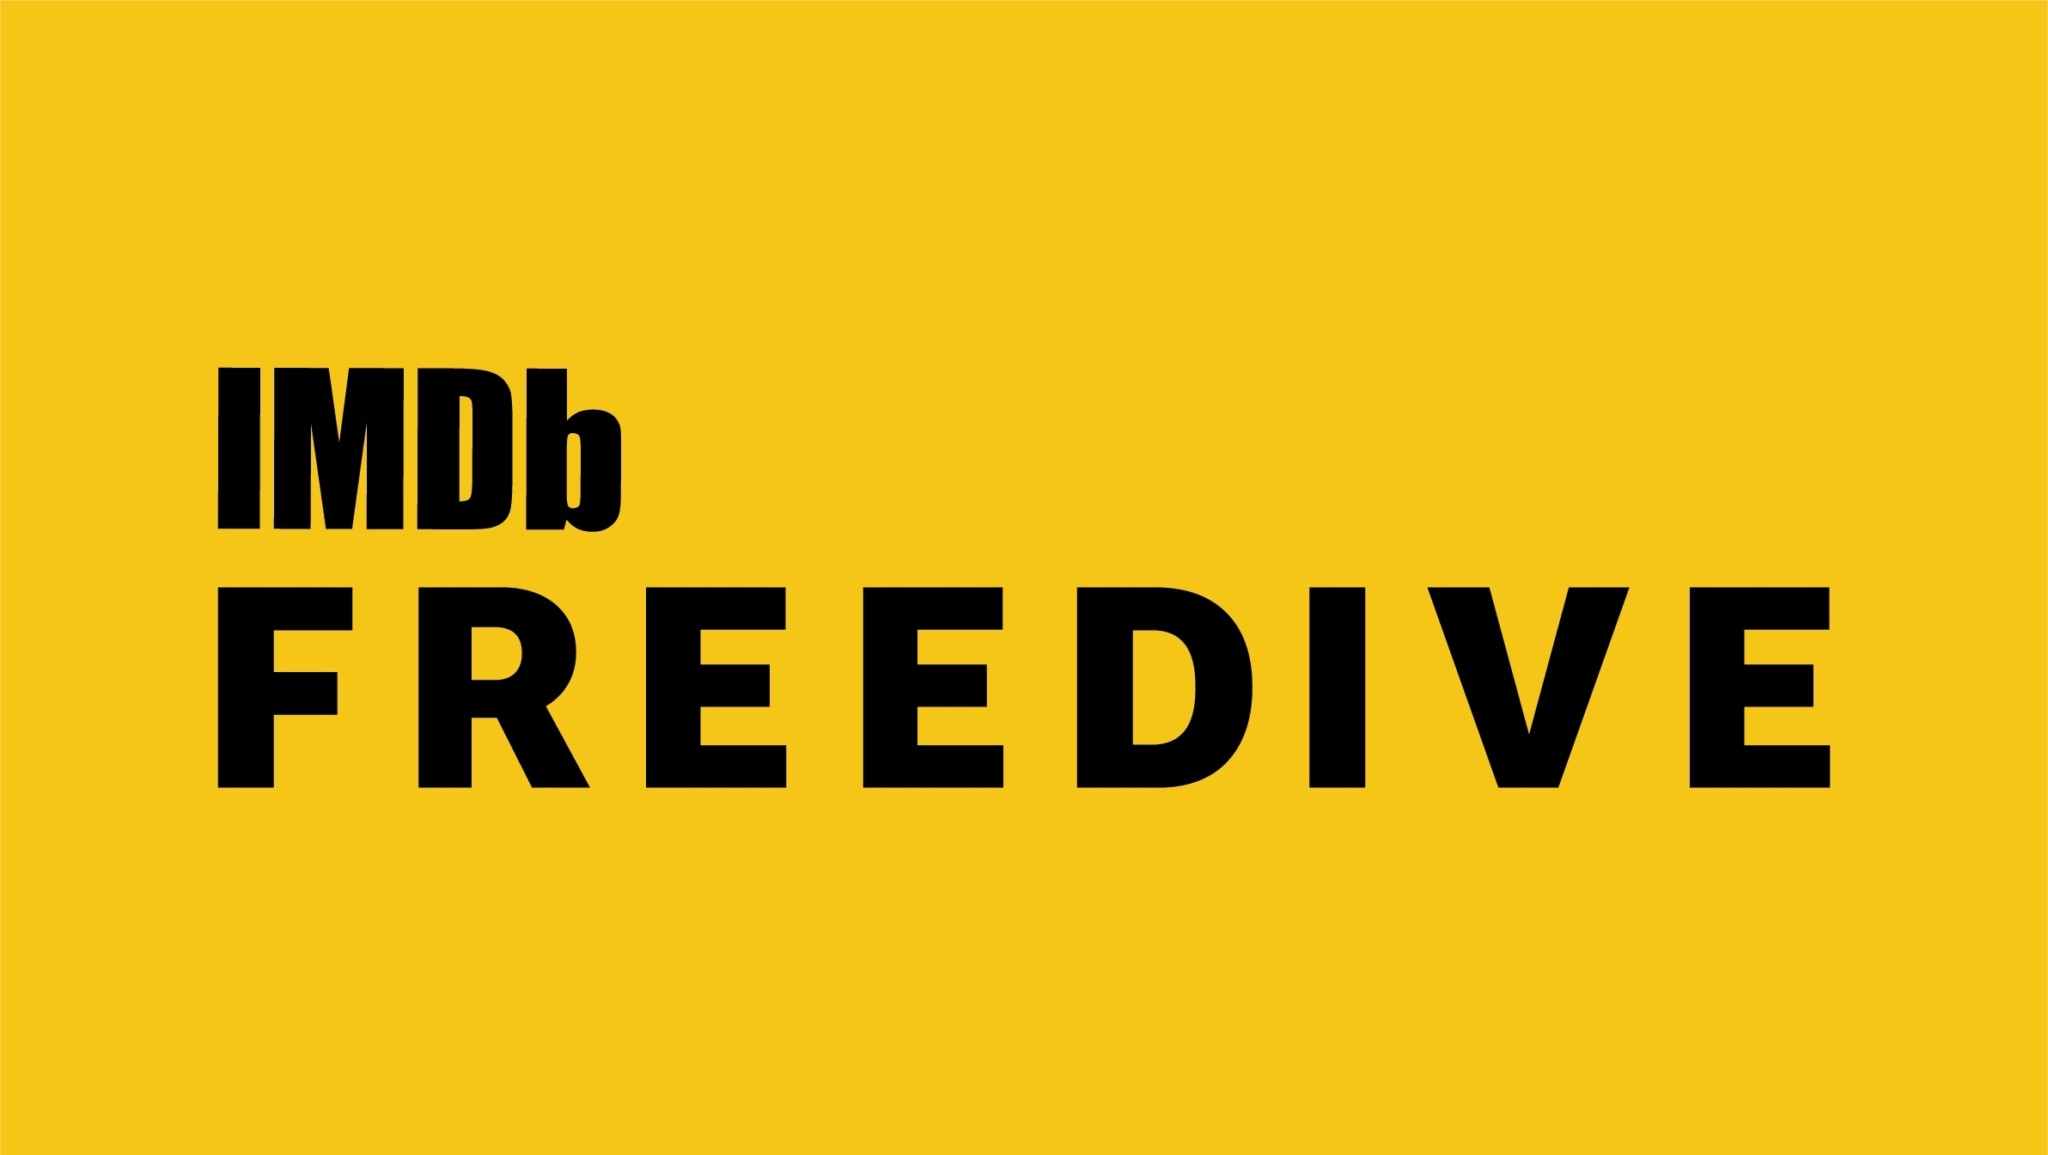 Amazon's IMDB launches Freedive - an ad supported movie streaming service